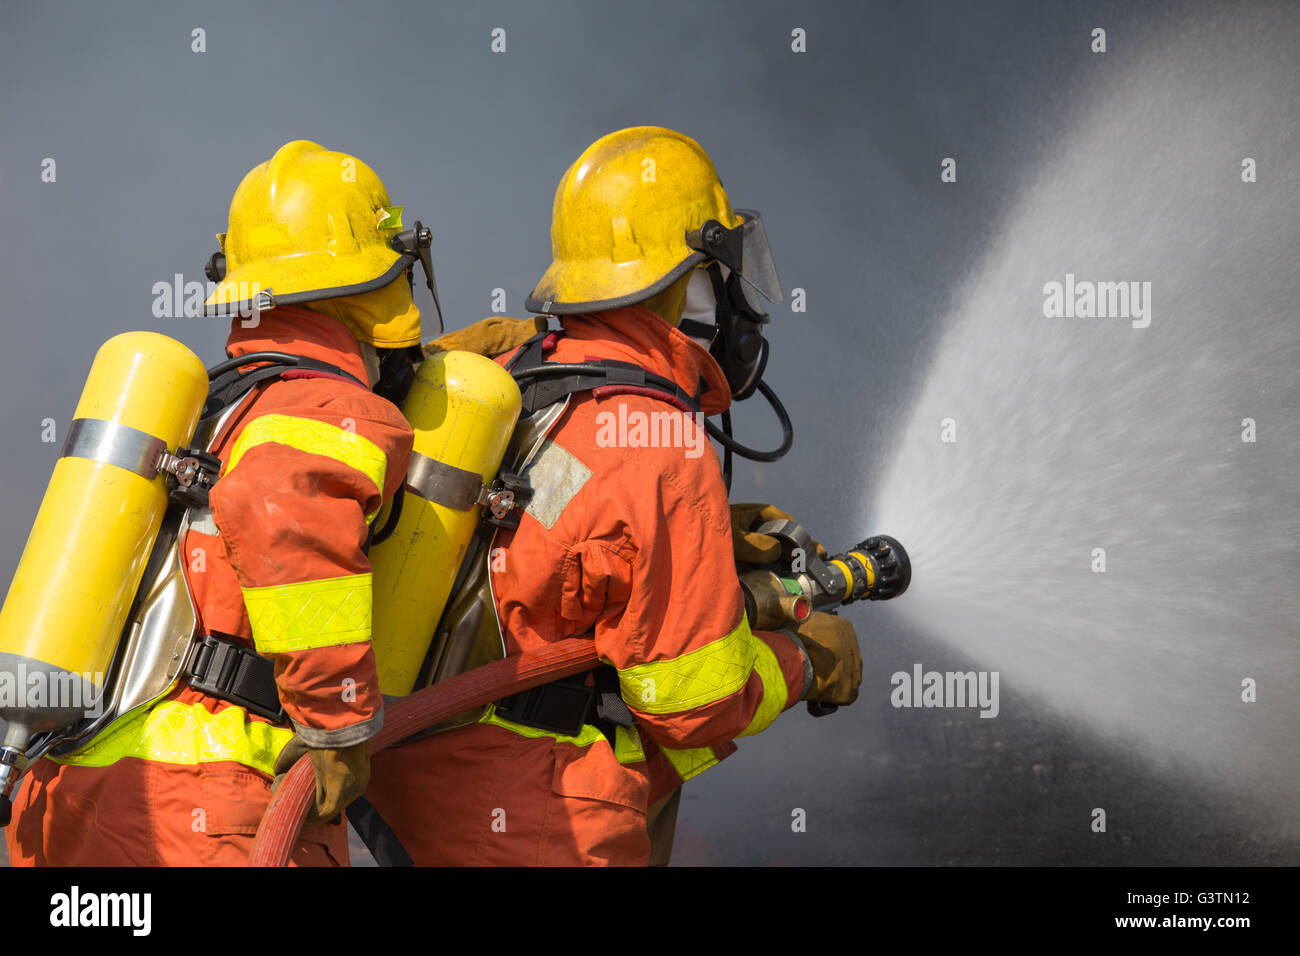 2 firefighters spraying water in fire fighting with dark smoke background - Stock Image